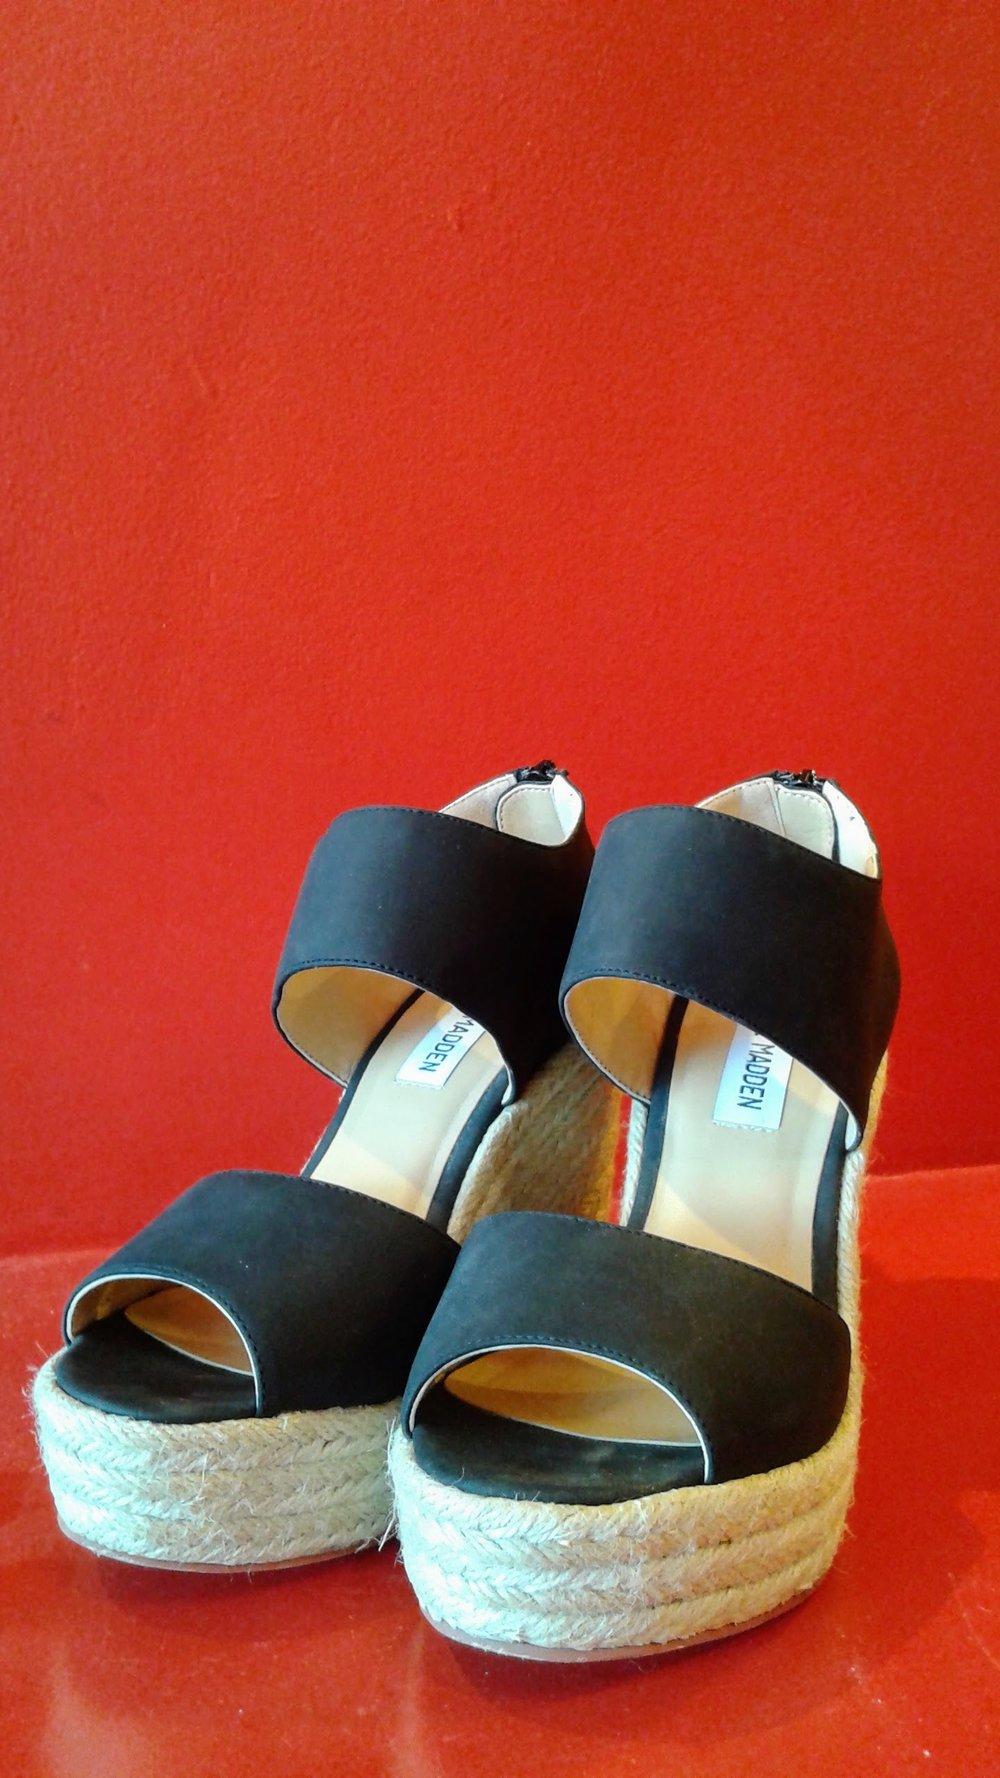 Steve Madden shoes; S6, $40